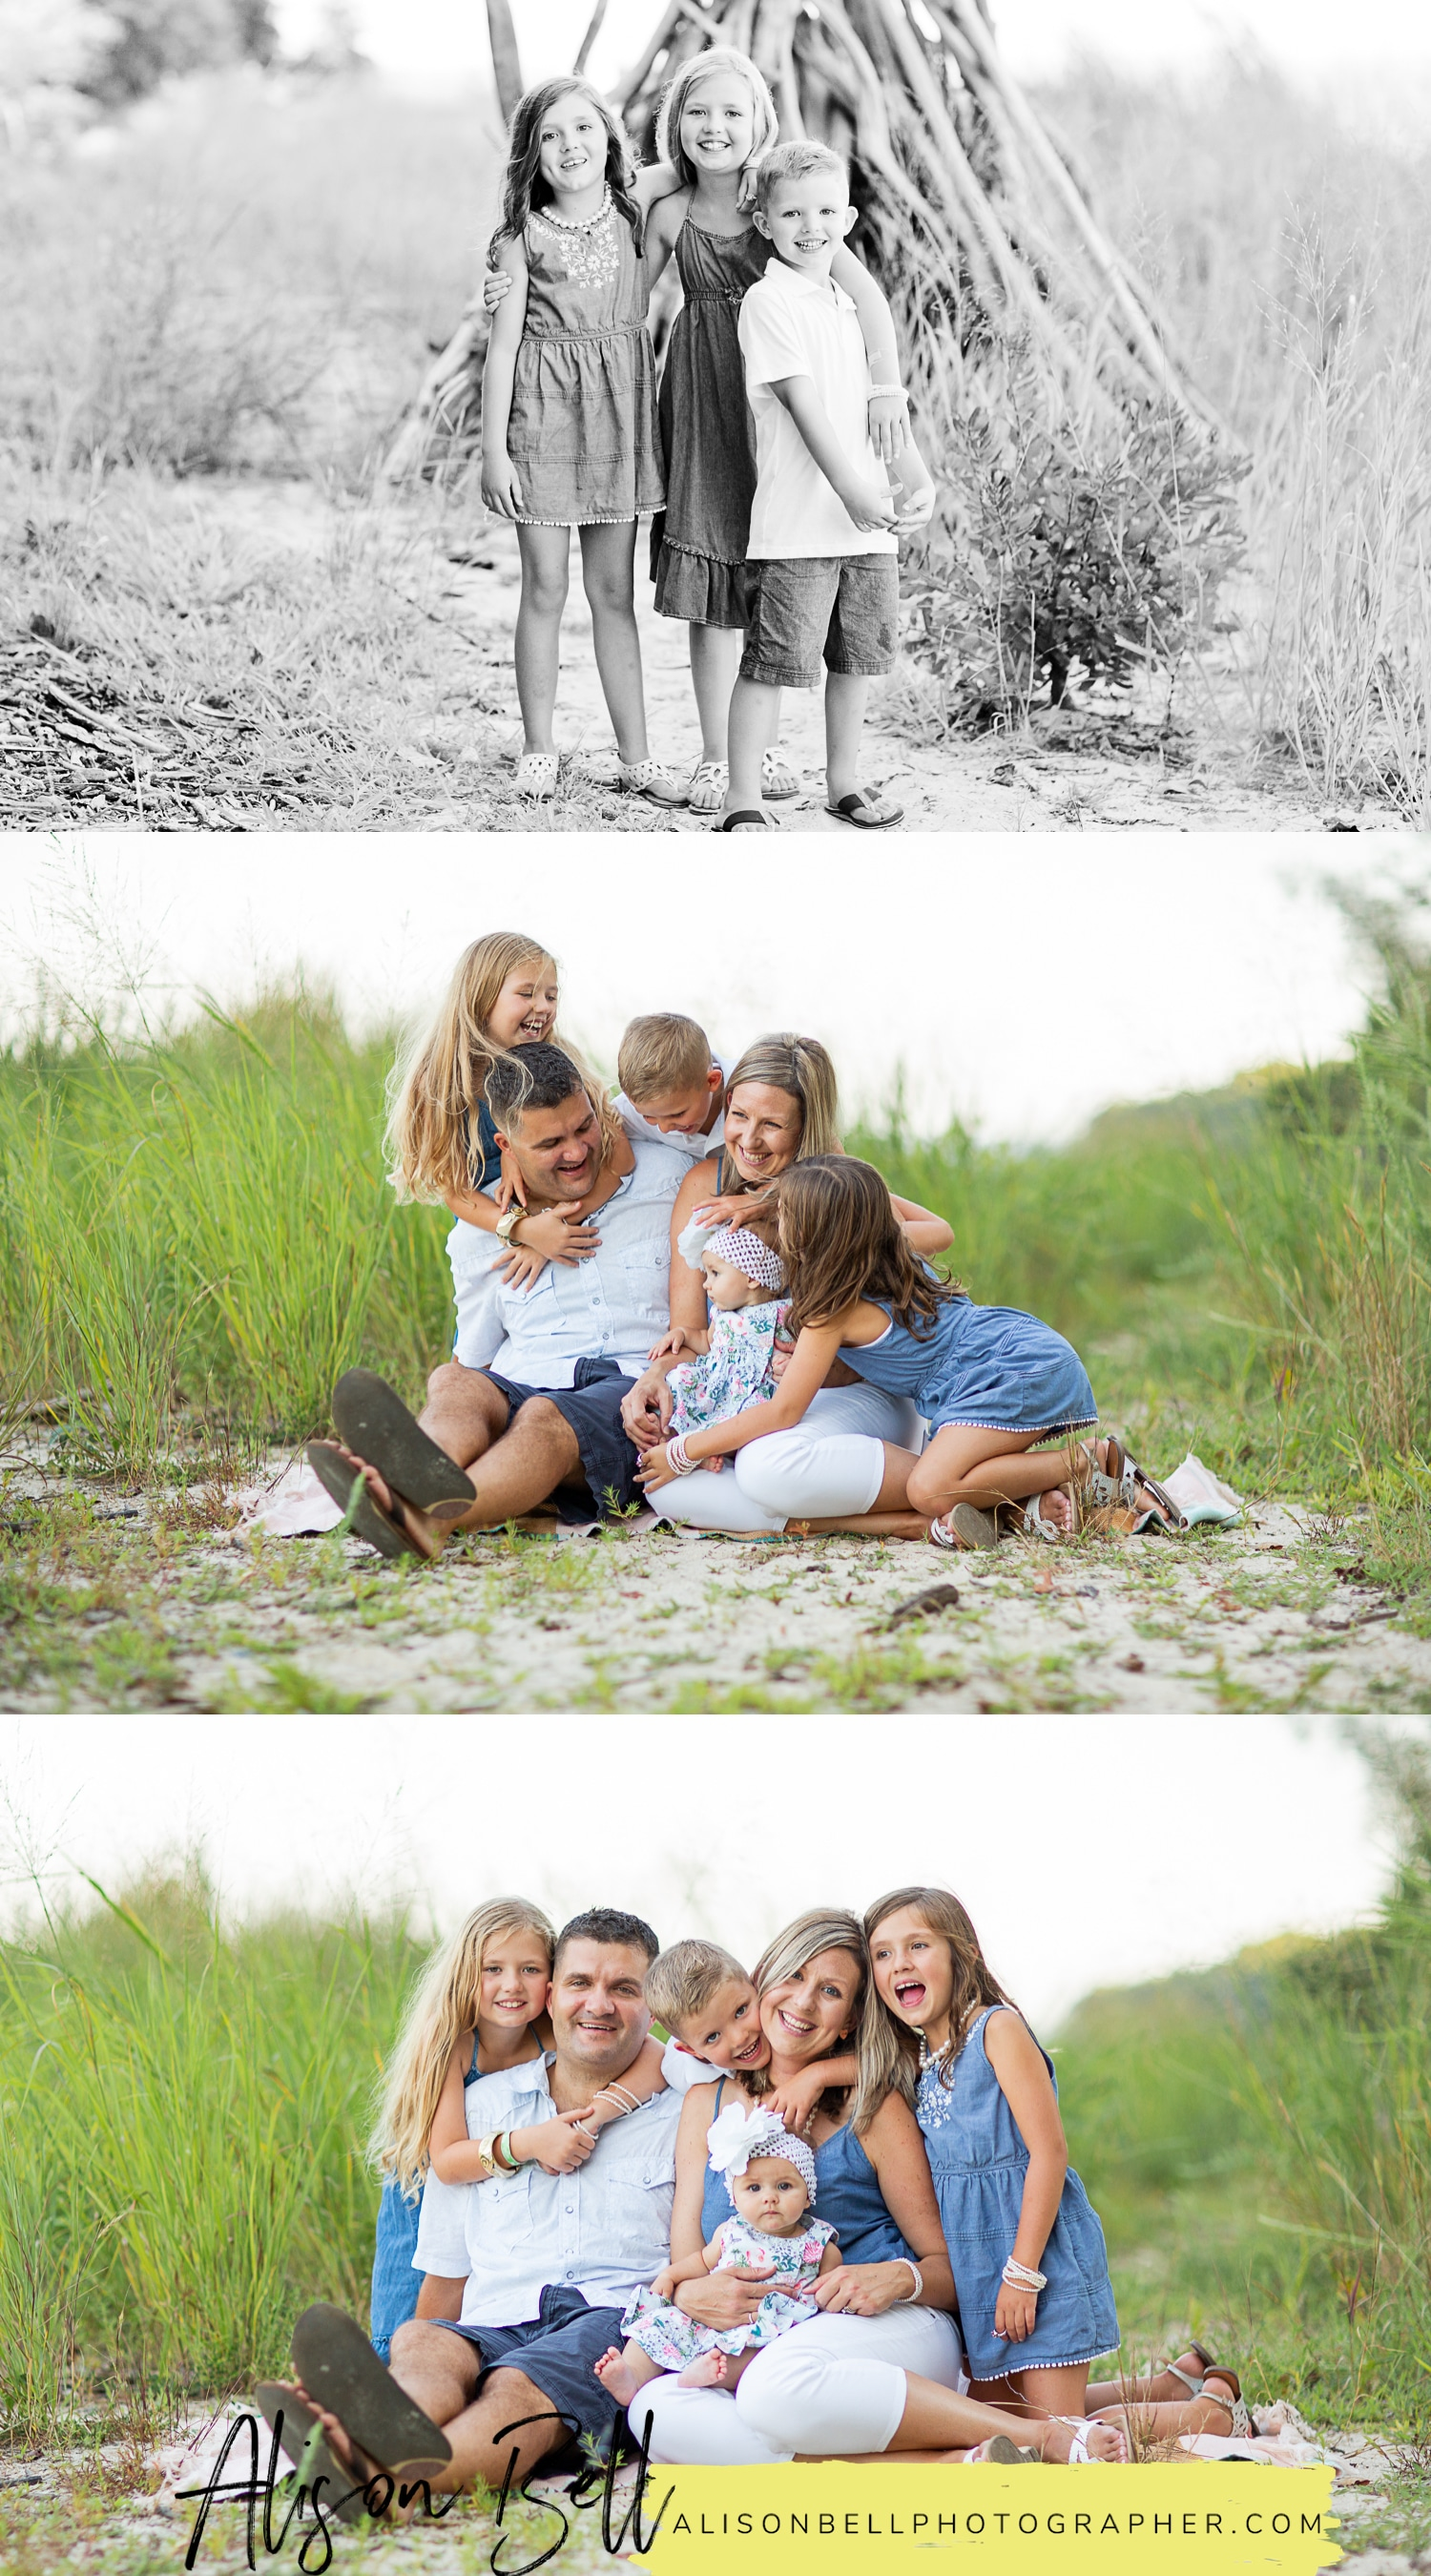 Family photo session at Widewater State Park in Northern Virginia by Alison Bell, Photographer